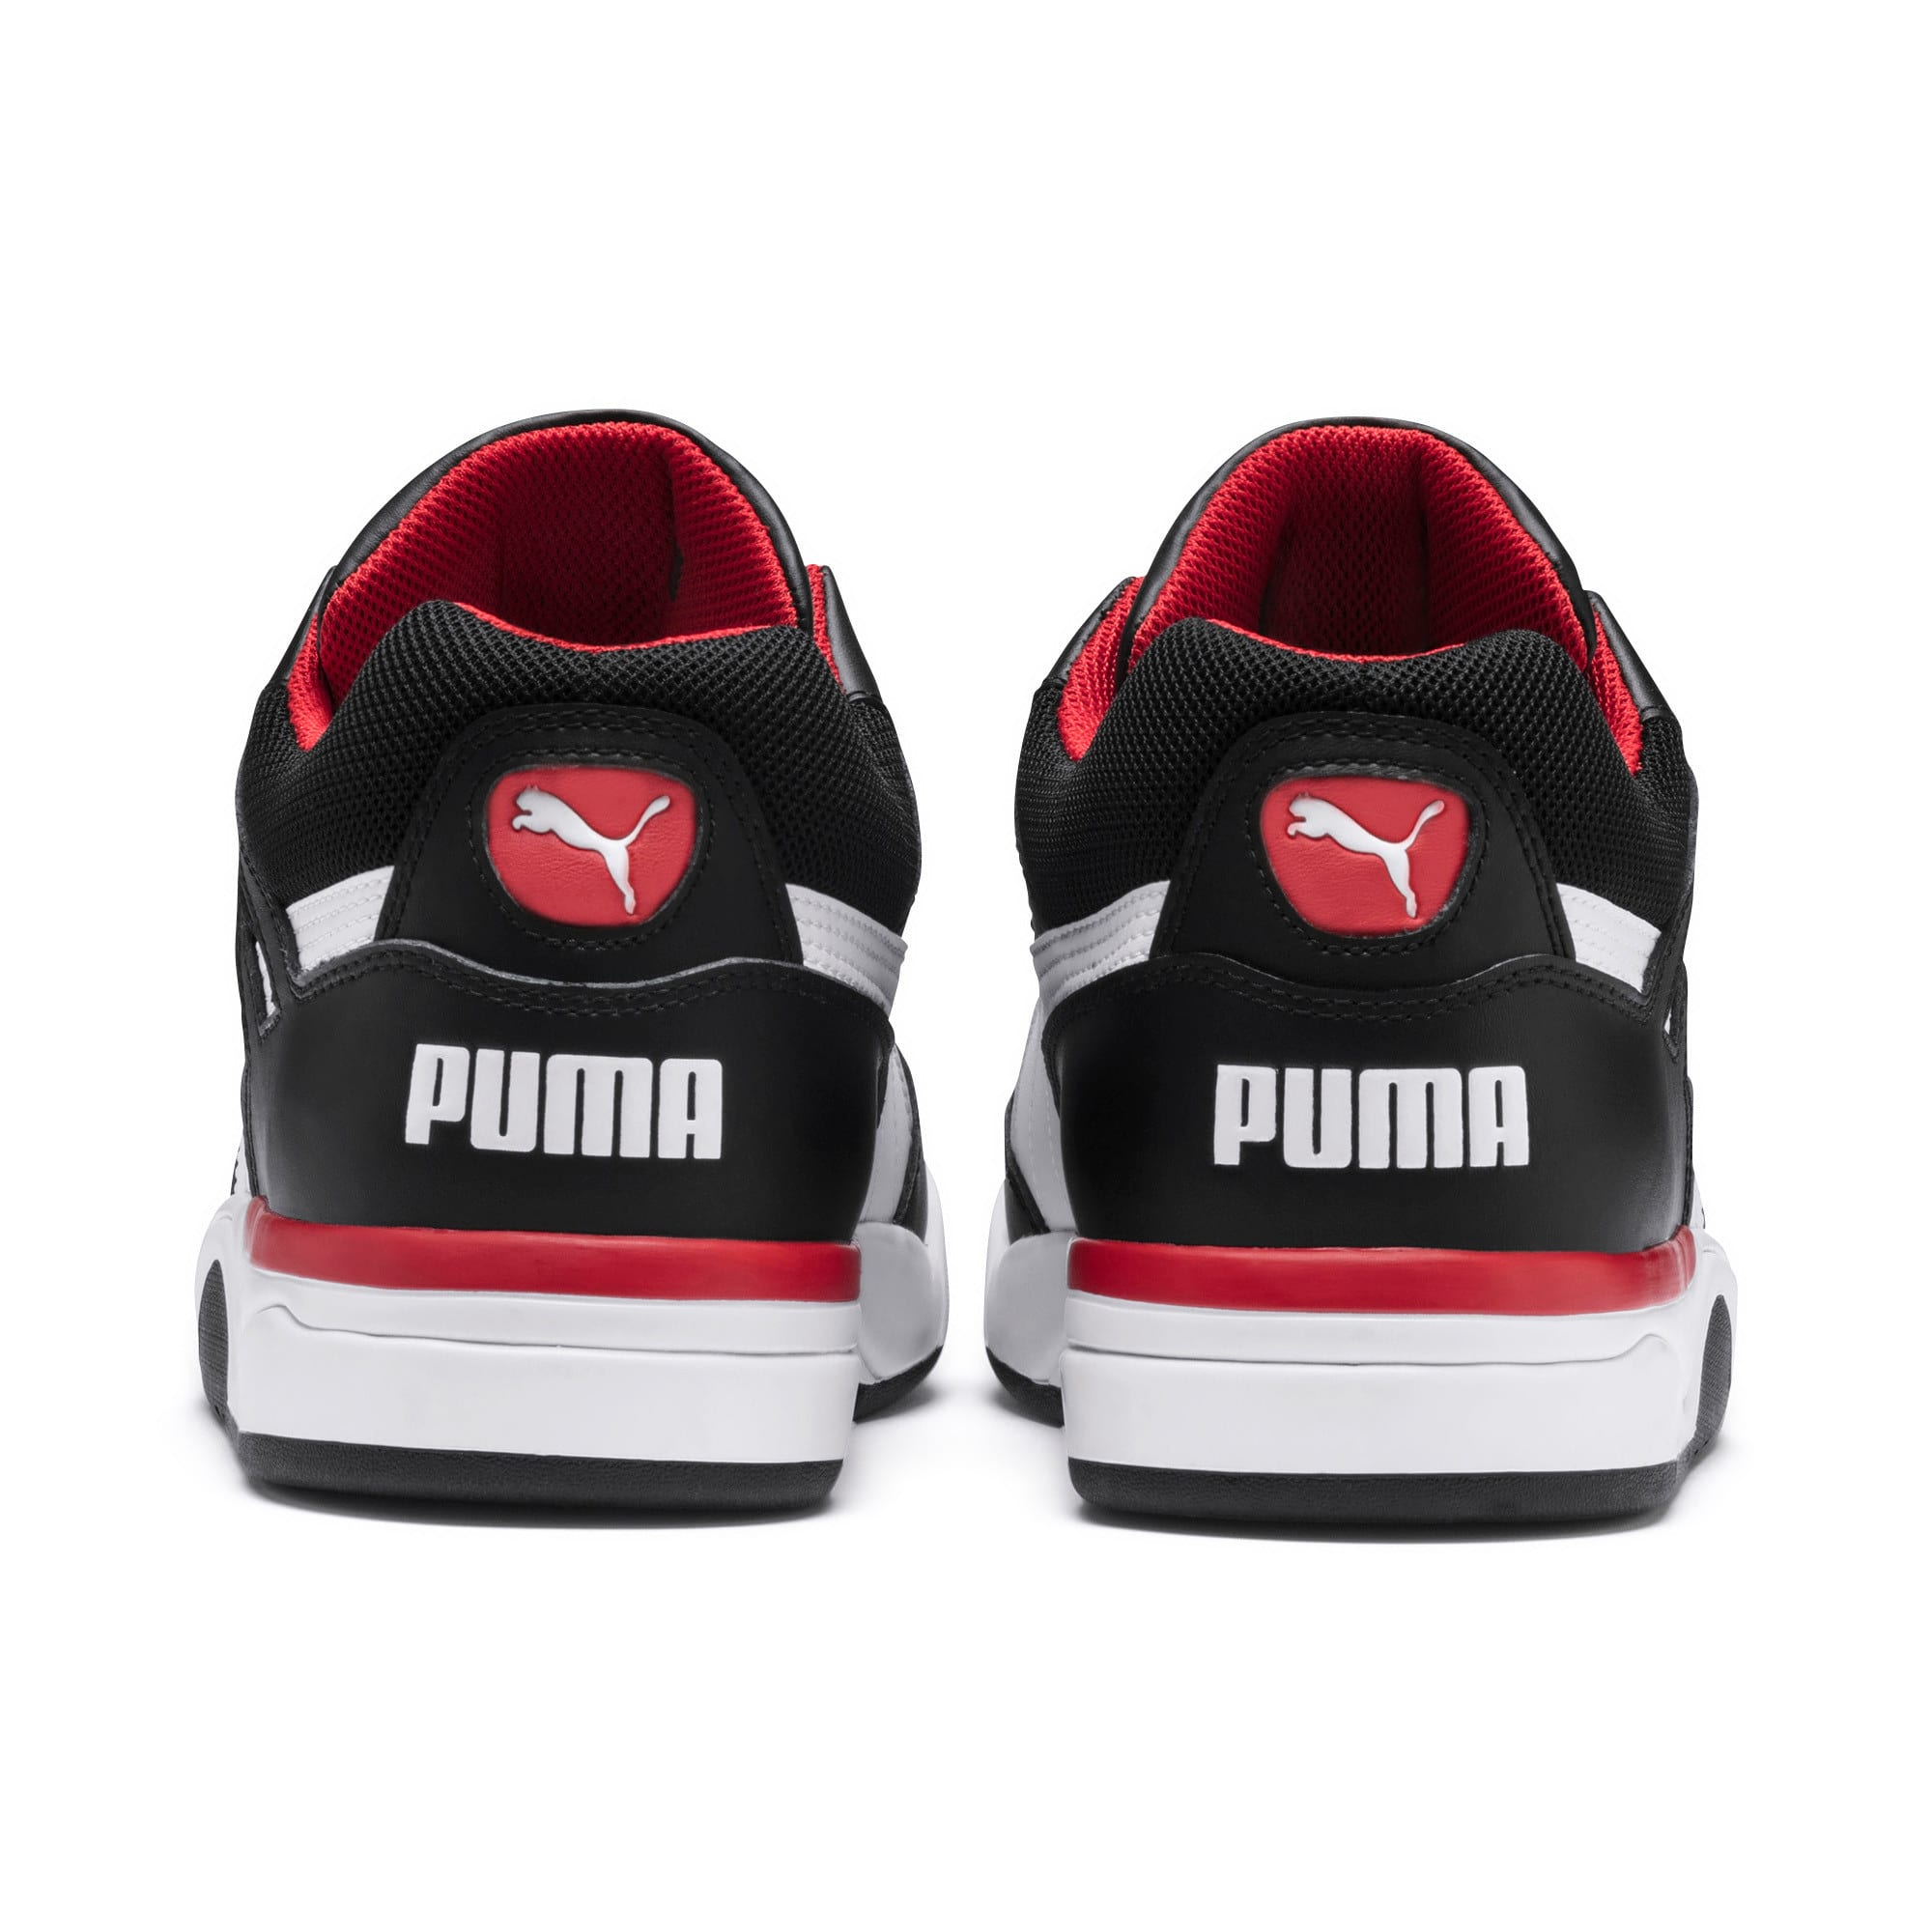 Thumbnail 3 of Palace Guard Men's Basketball Trainers, Puma Black-Puma White-red, medium